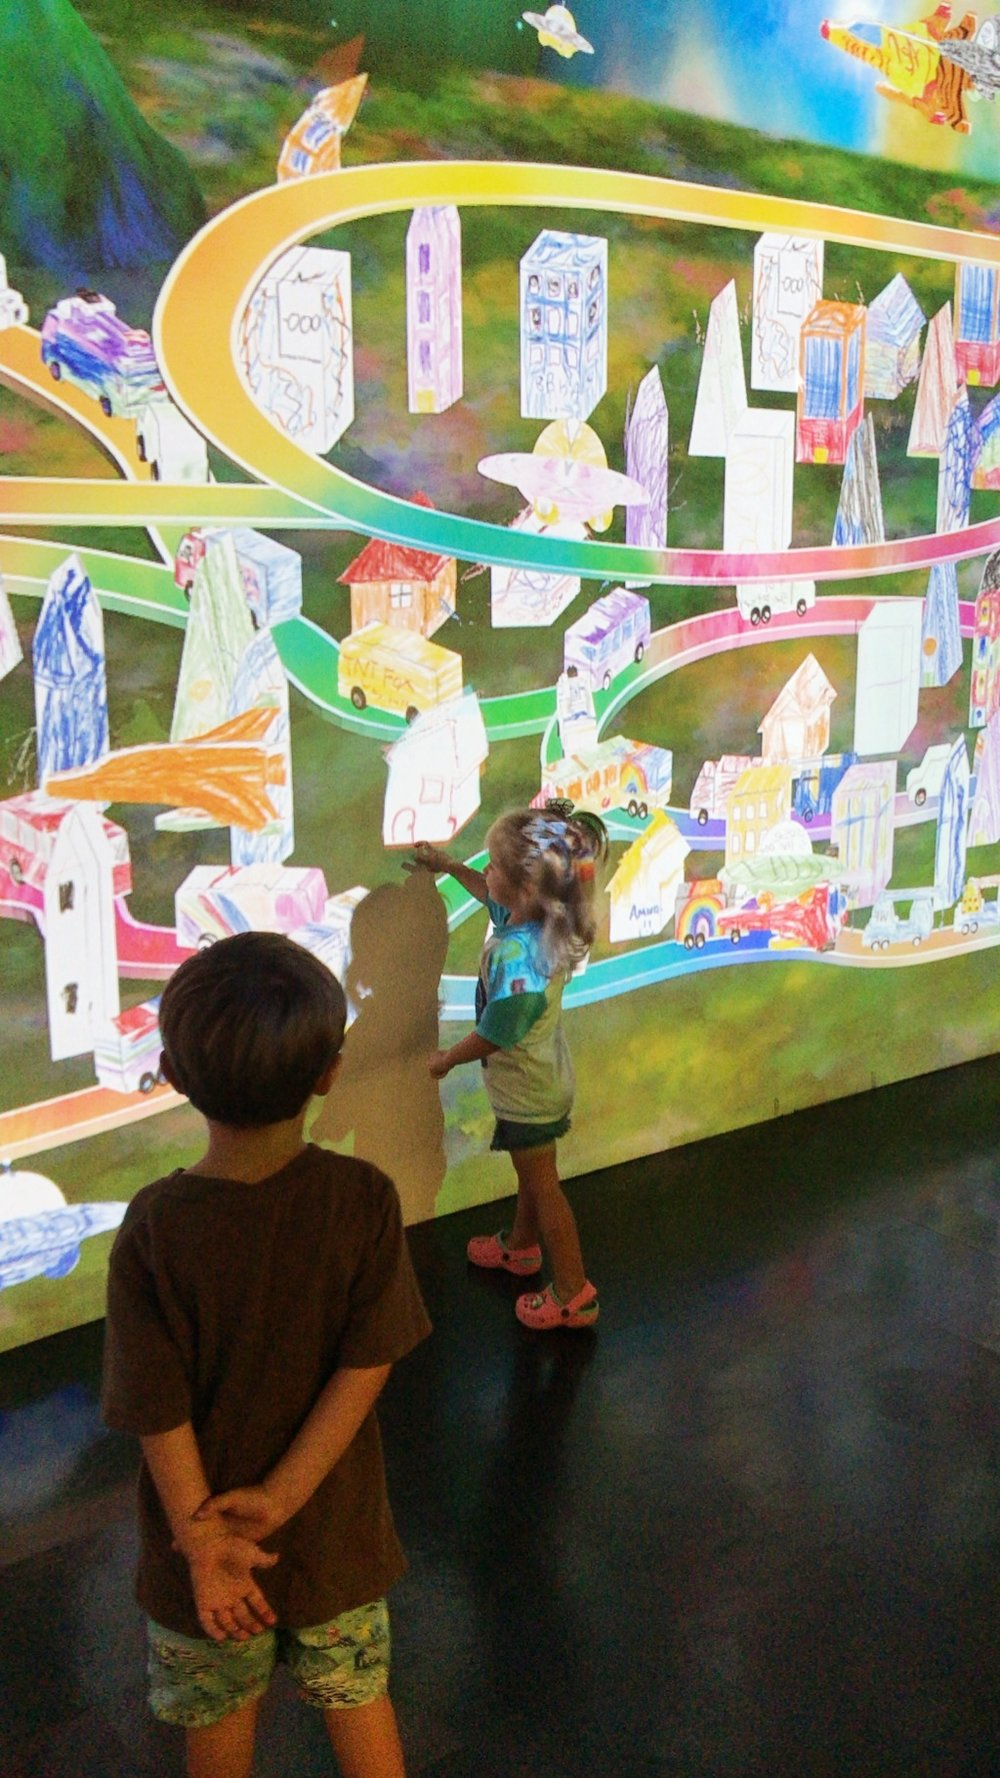 Dream Tomorrow Today a time machine into the future, designing cities, shaping community values, role playing future careers, seeing, doing, imagining and being the future.  This is a summer exhibit for kids in partnership with the San Antonio Texas tricentennial celebreation.